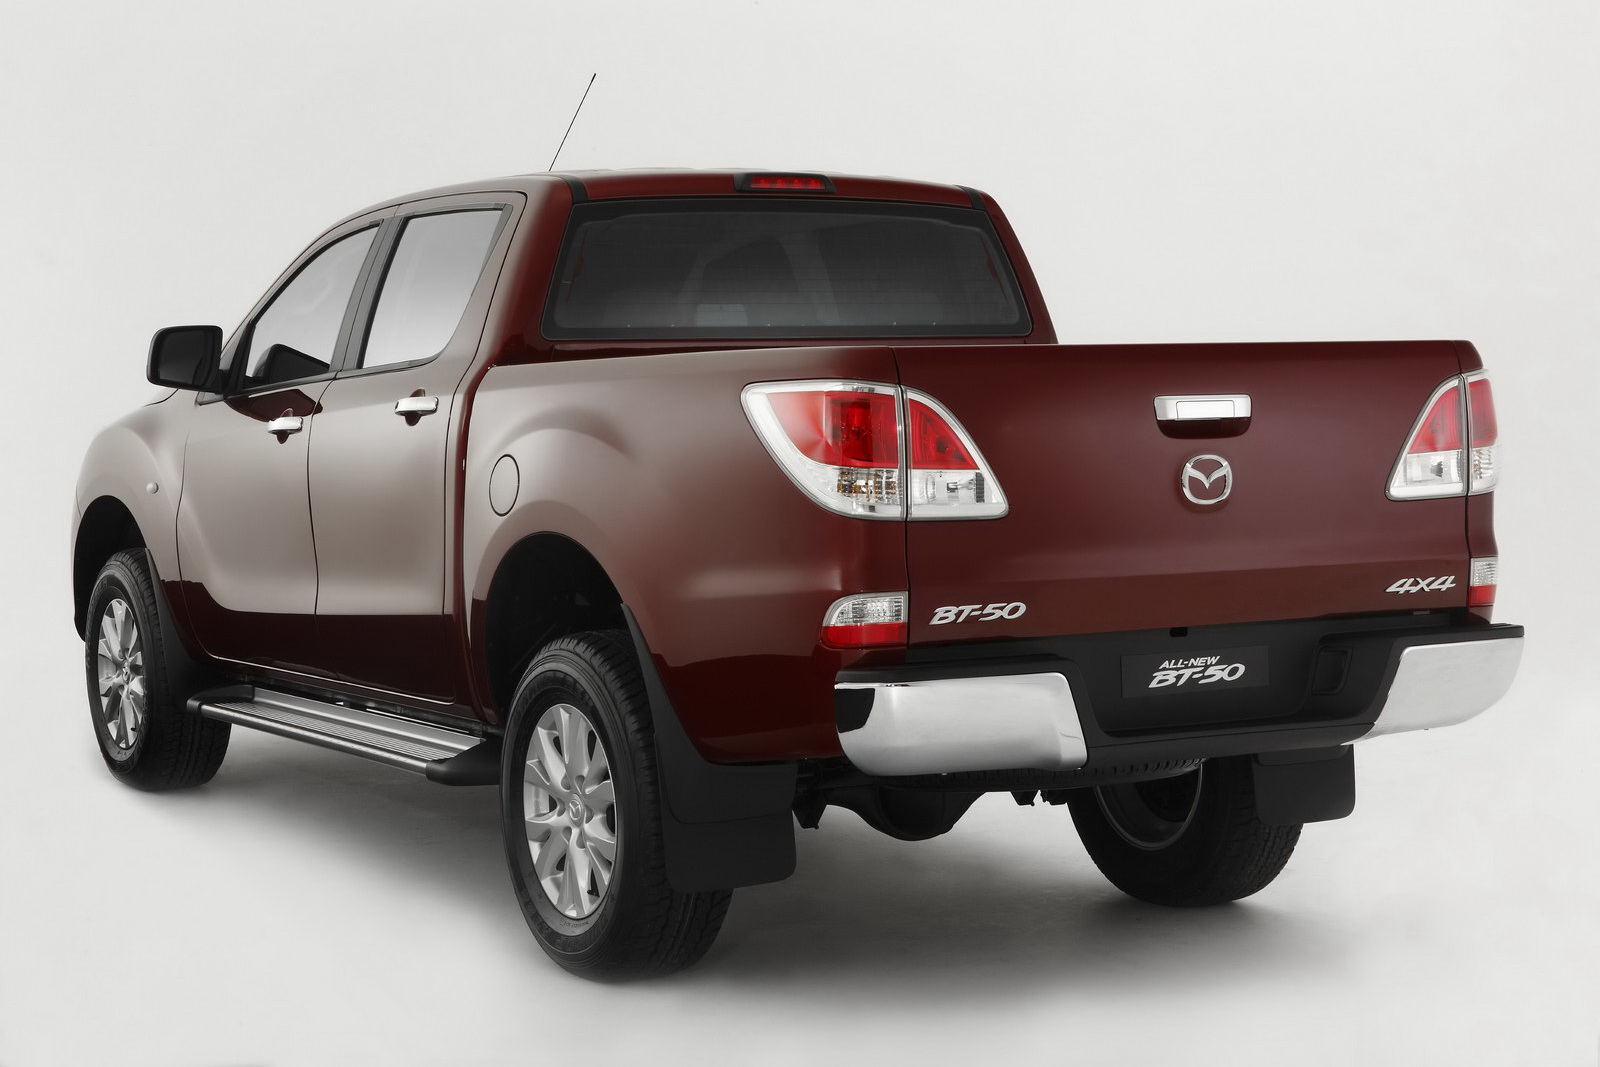 New Mazda BT-50 Pickup Truck Car Free Download Image Of